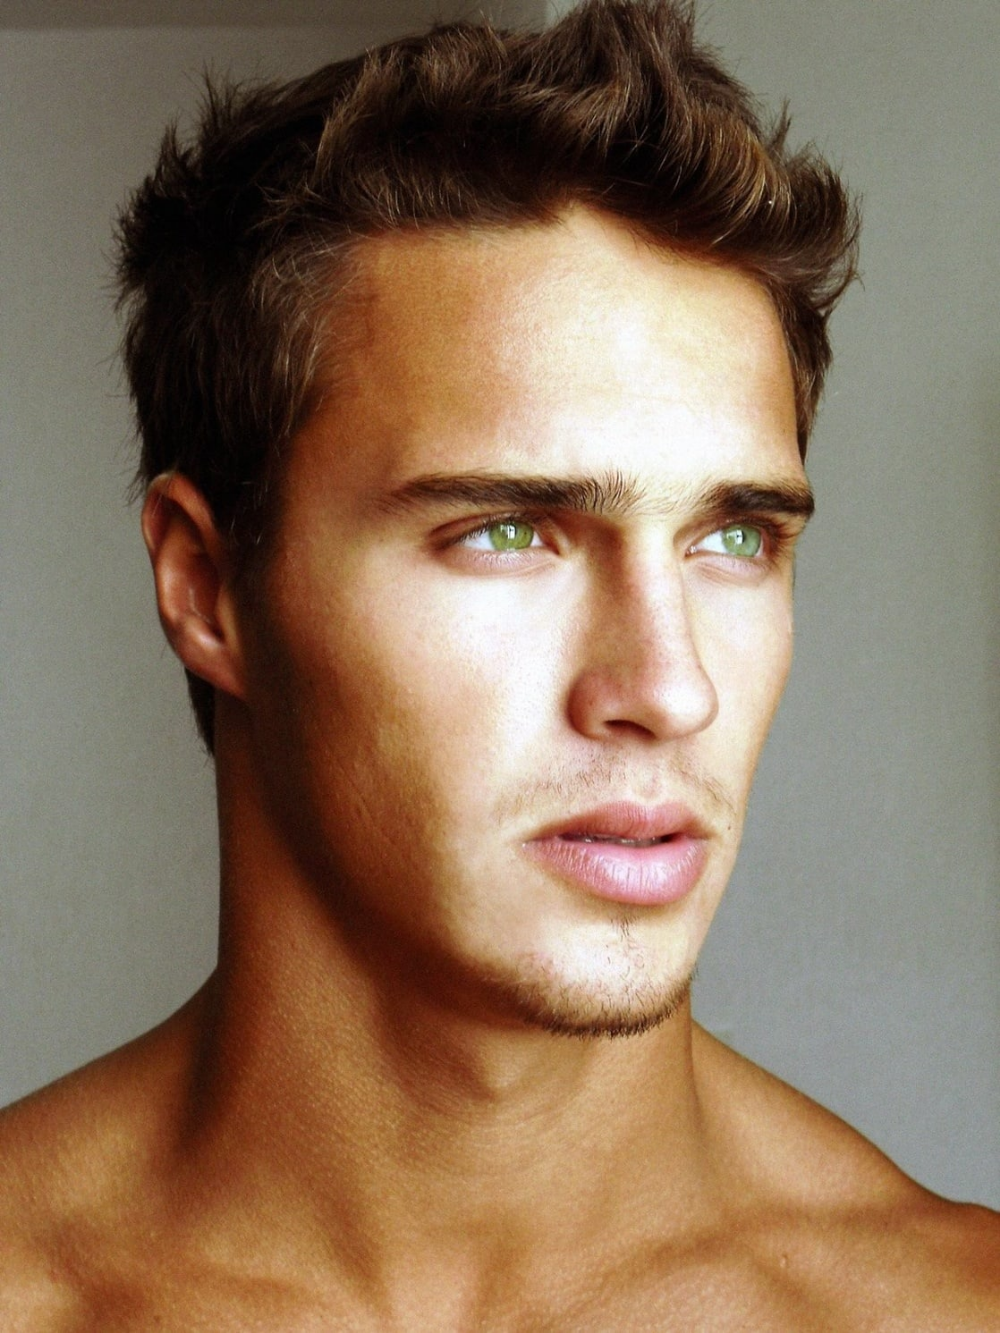 Ralph Schmidt On Twitter Guys With Green Eyes Brown Hair Men Boys With Green Eyes